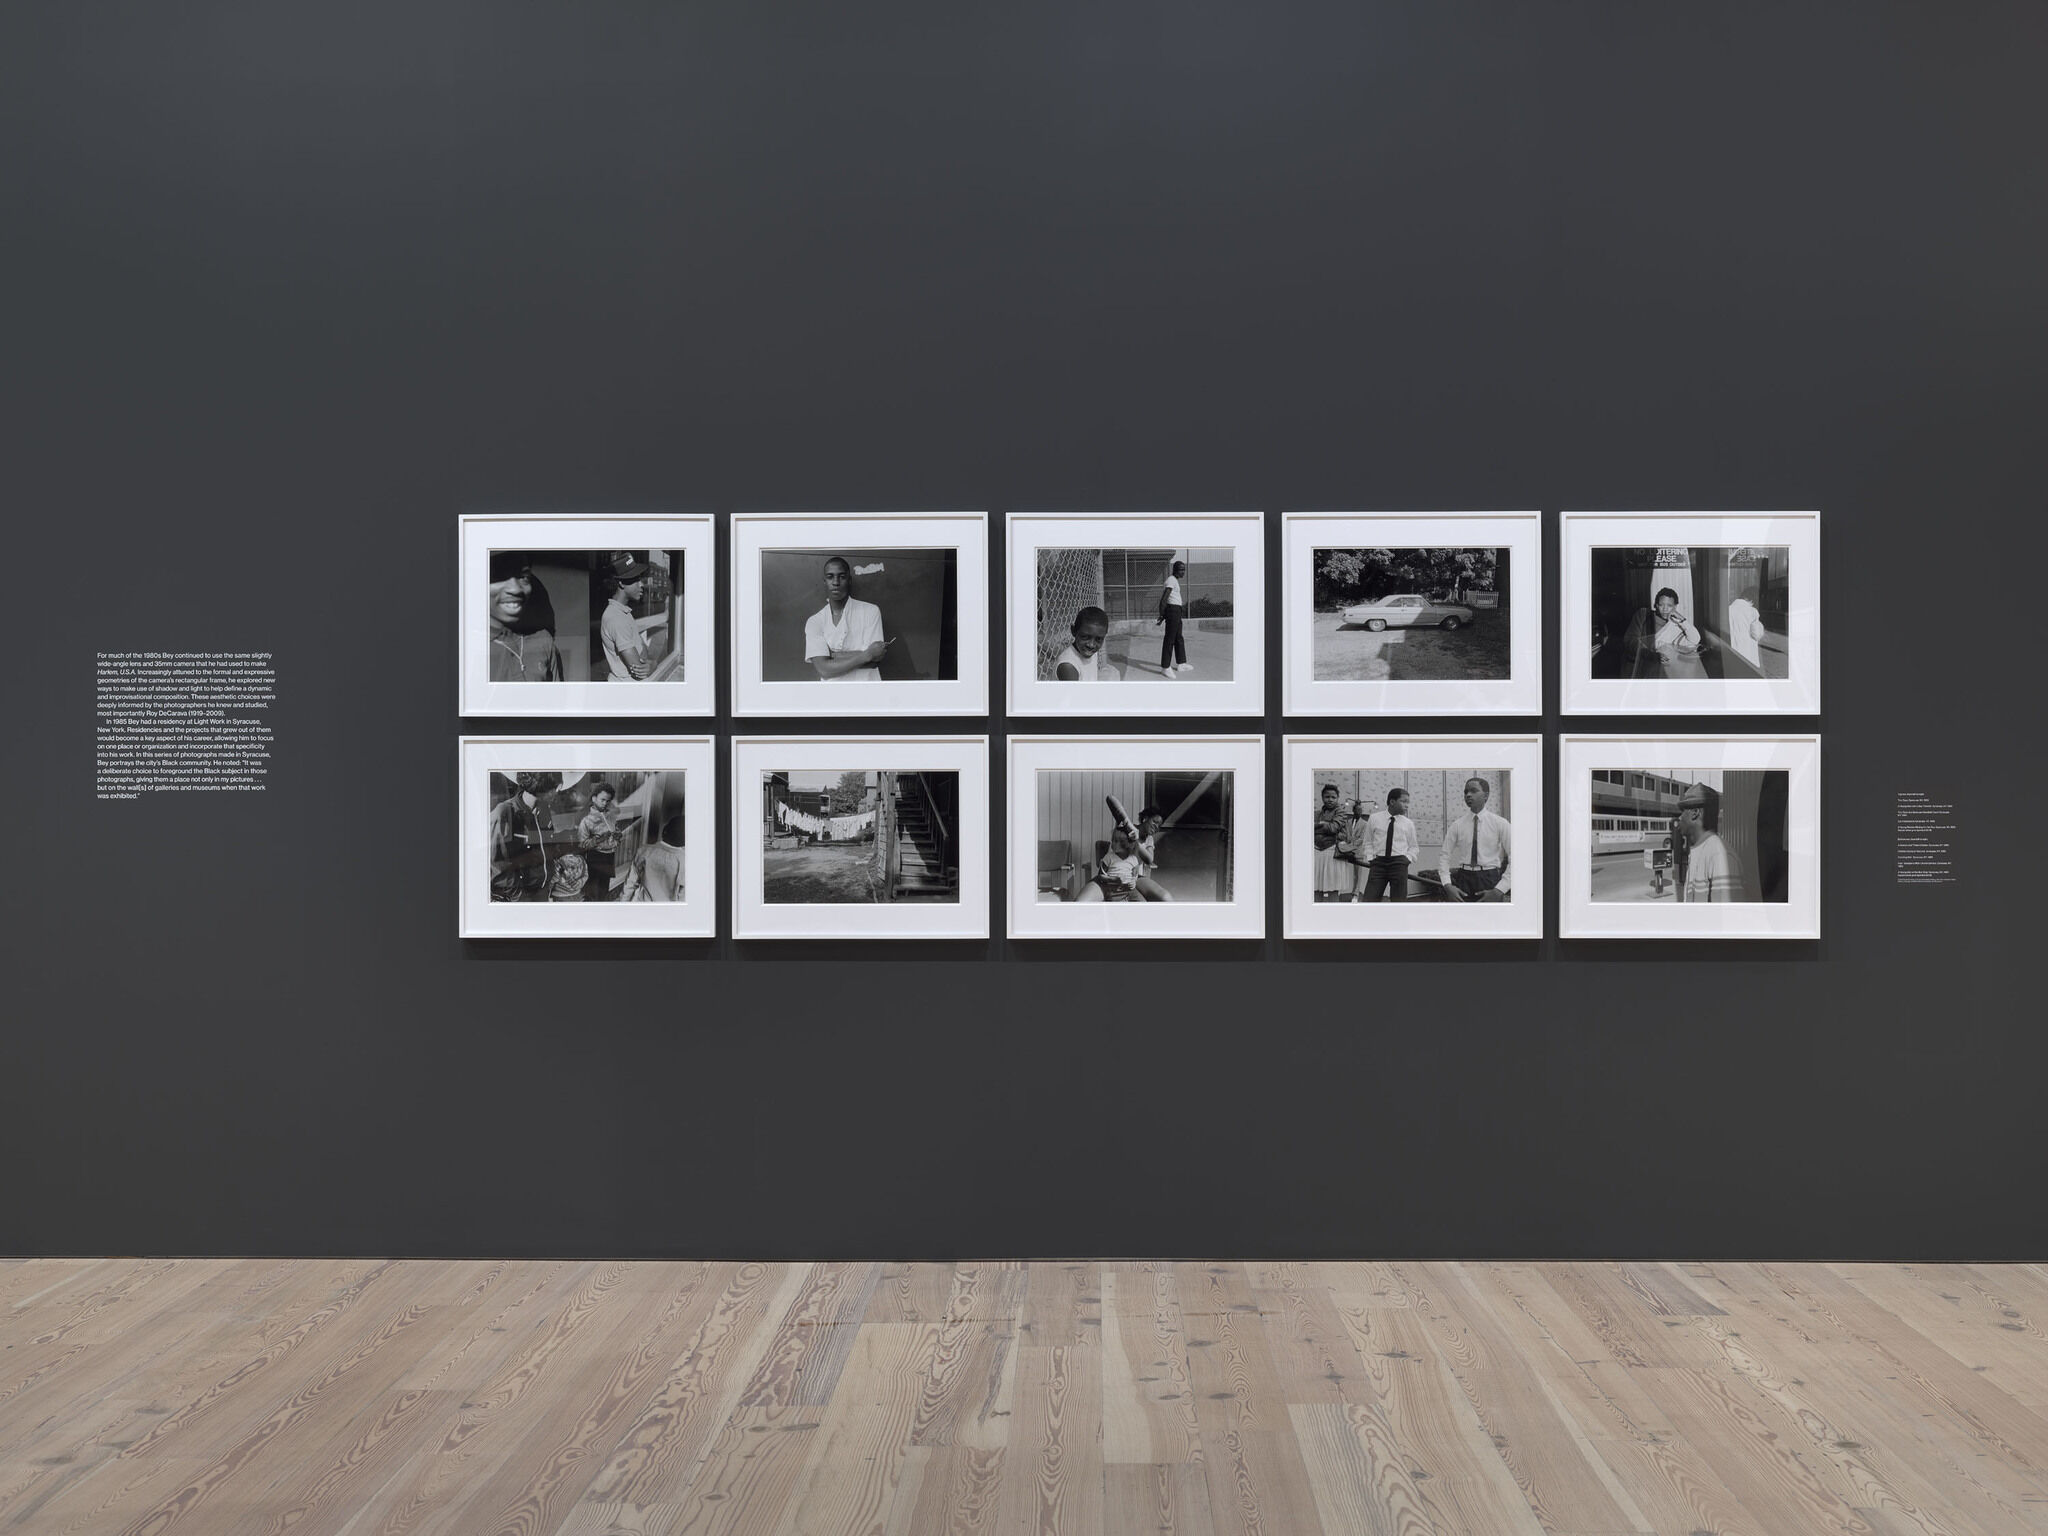 Ten framed photographs from the Dawoud Bey exhibition mounted against a black wall.